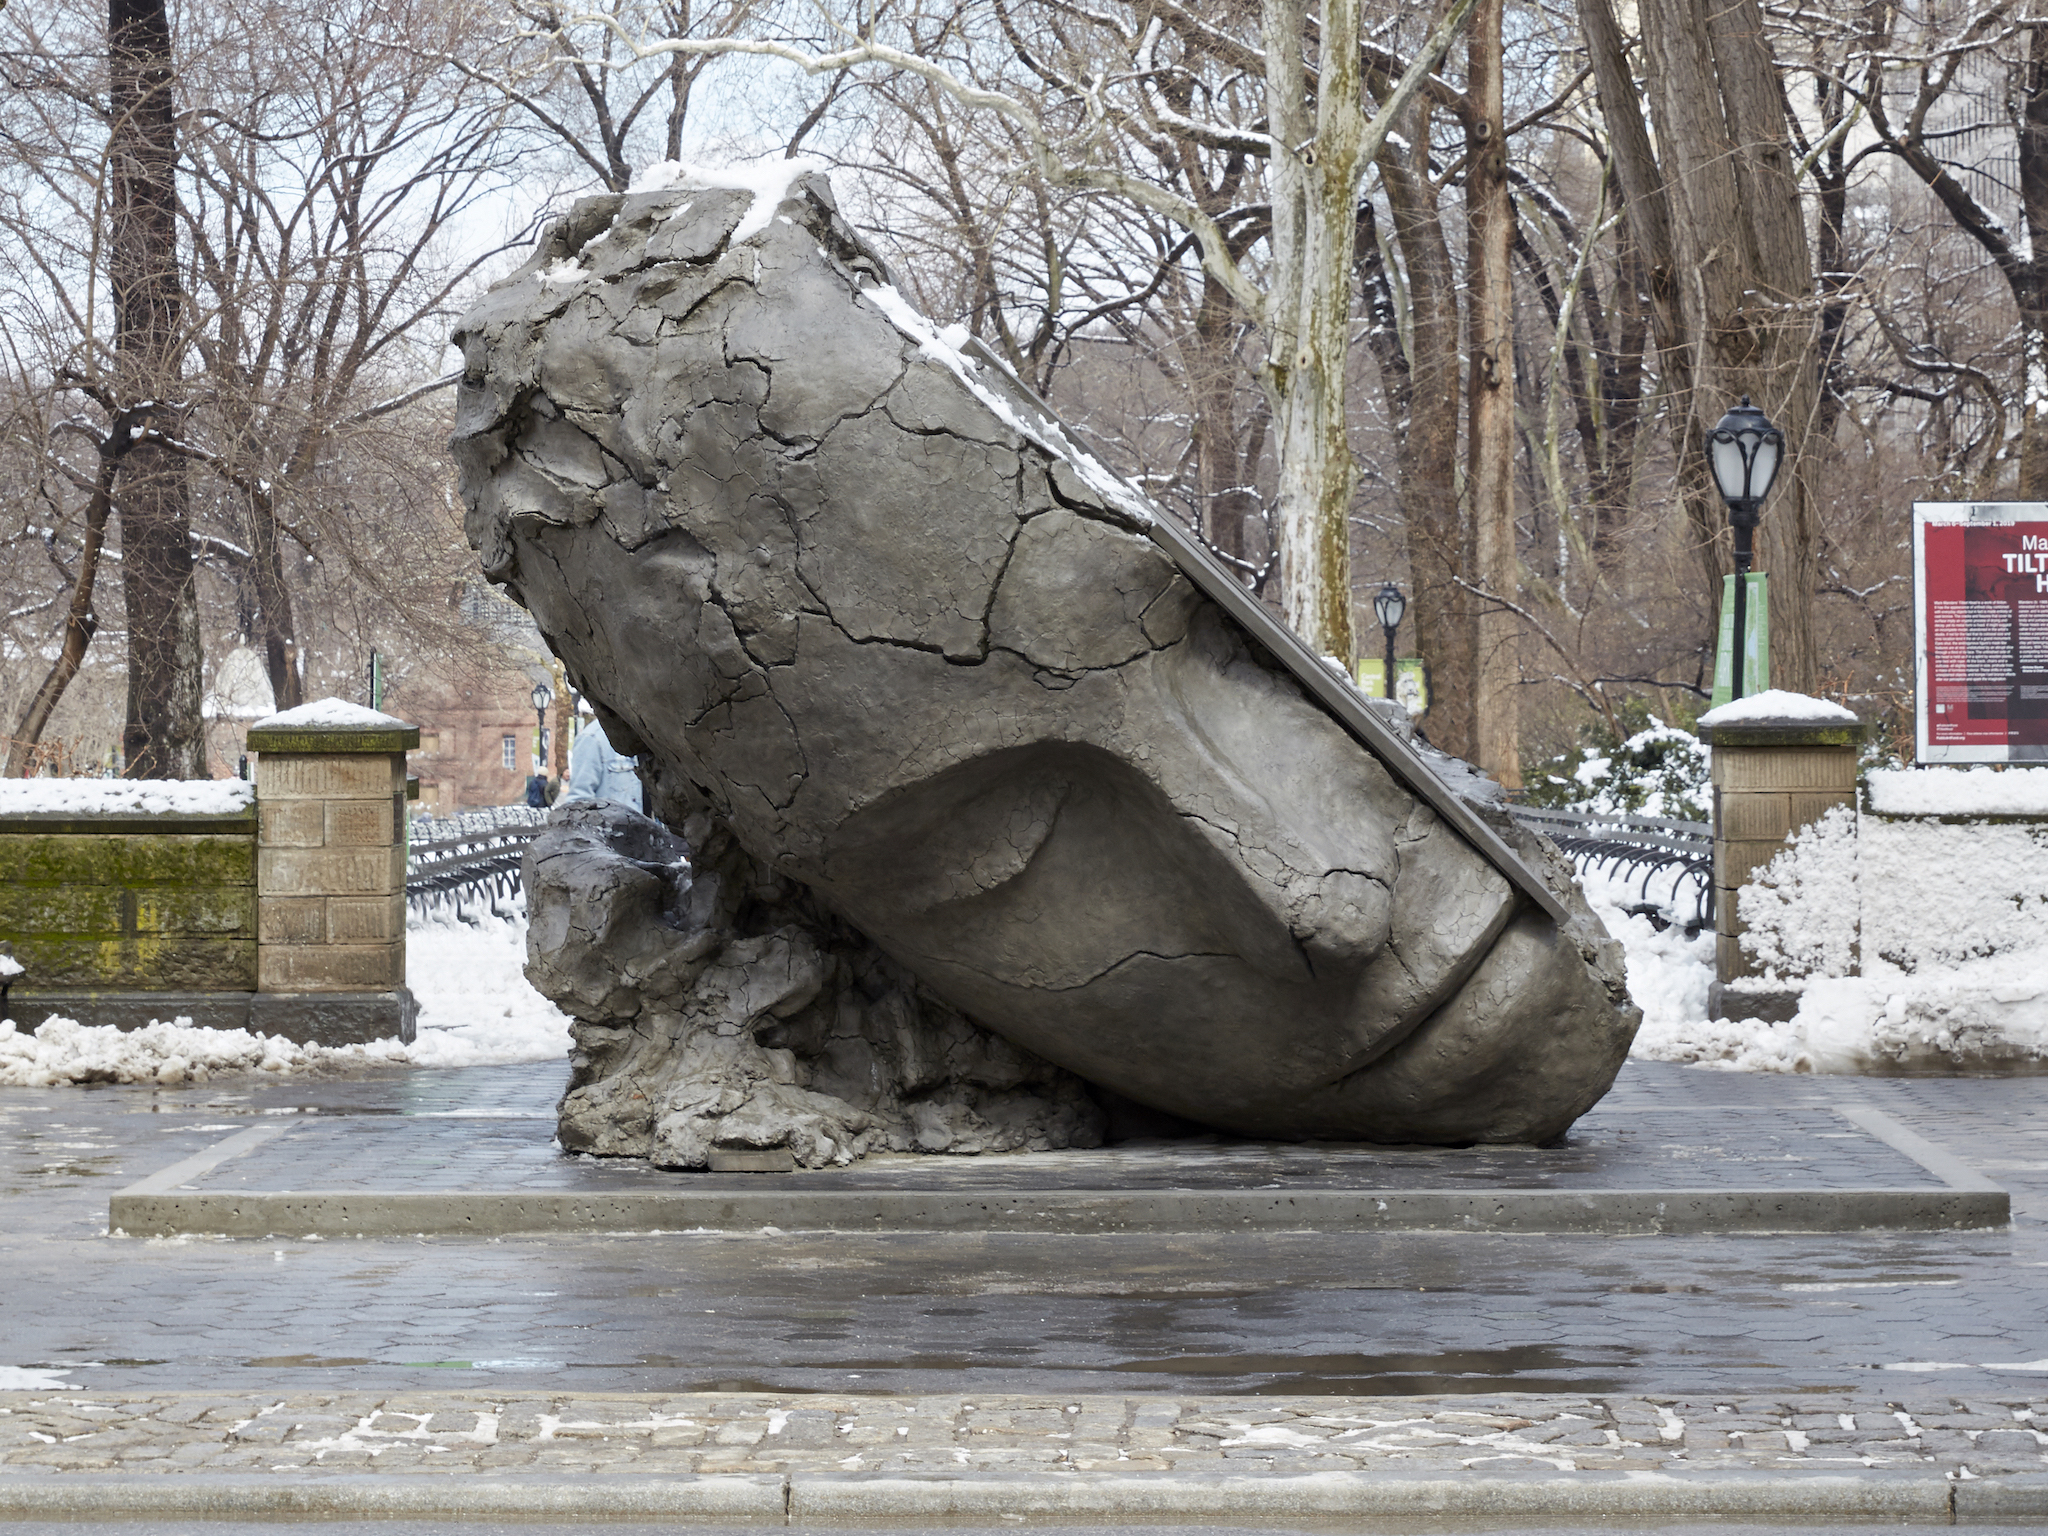 Mark Manders talks about Tilted Head at Central Park